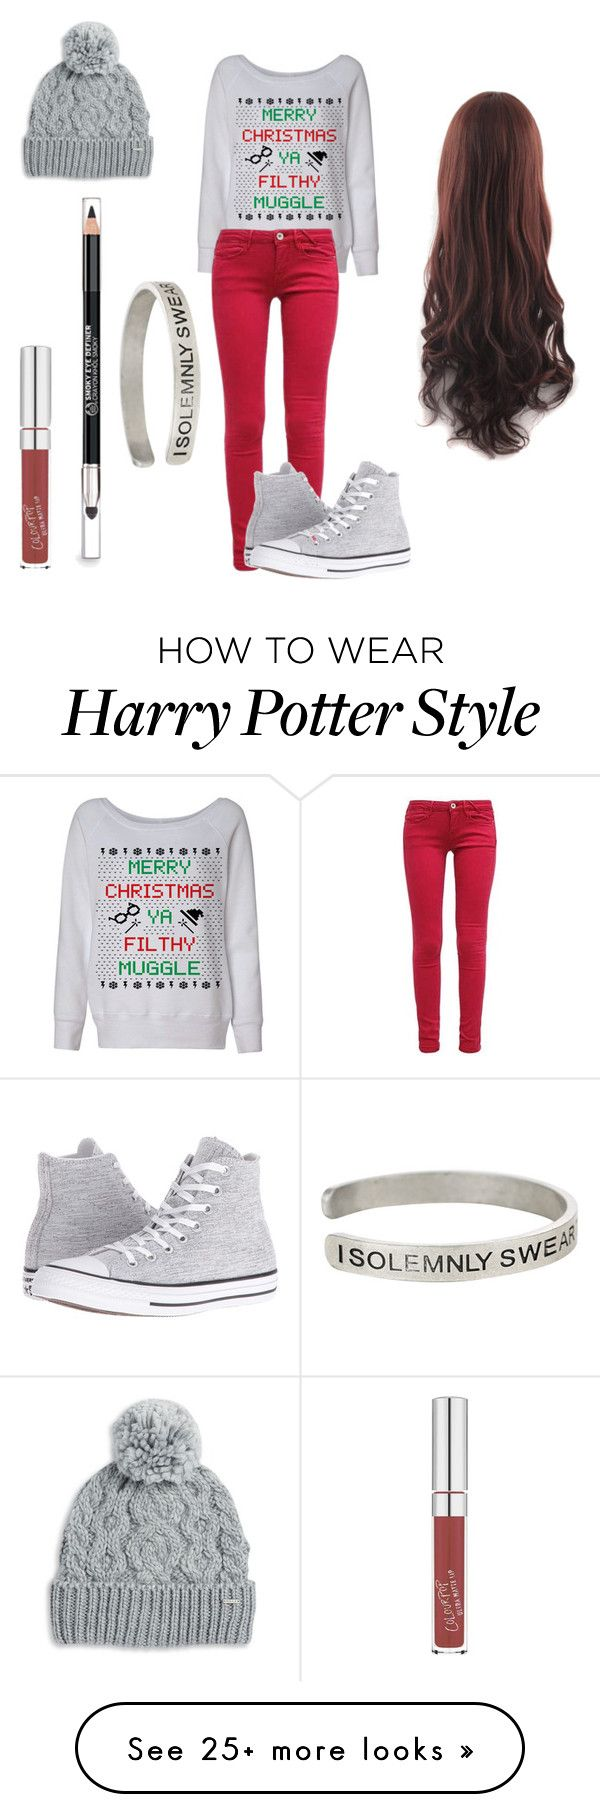 """Untitled #23"" by imkindaboring on Polyvore featuring Converse, Rella, The Body Shop and Warner Bros."